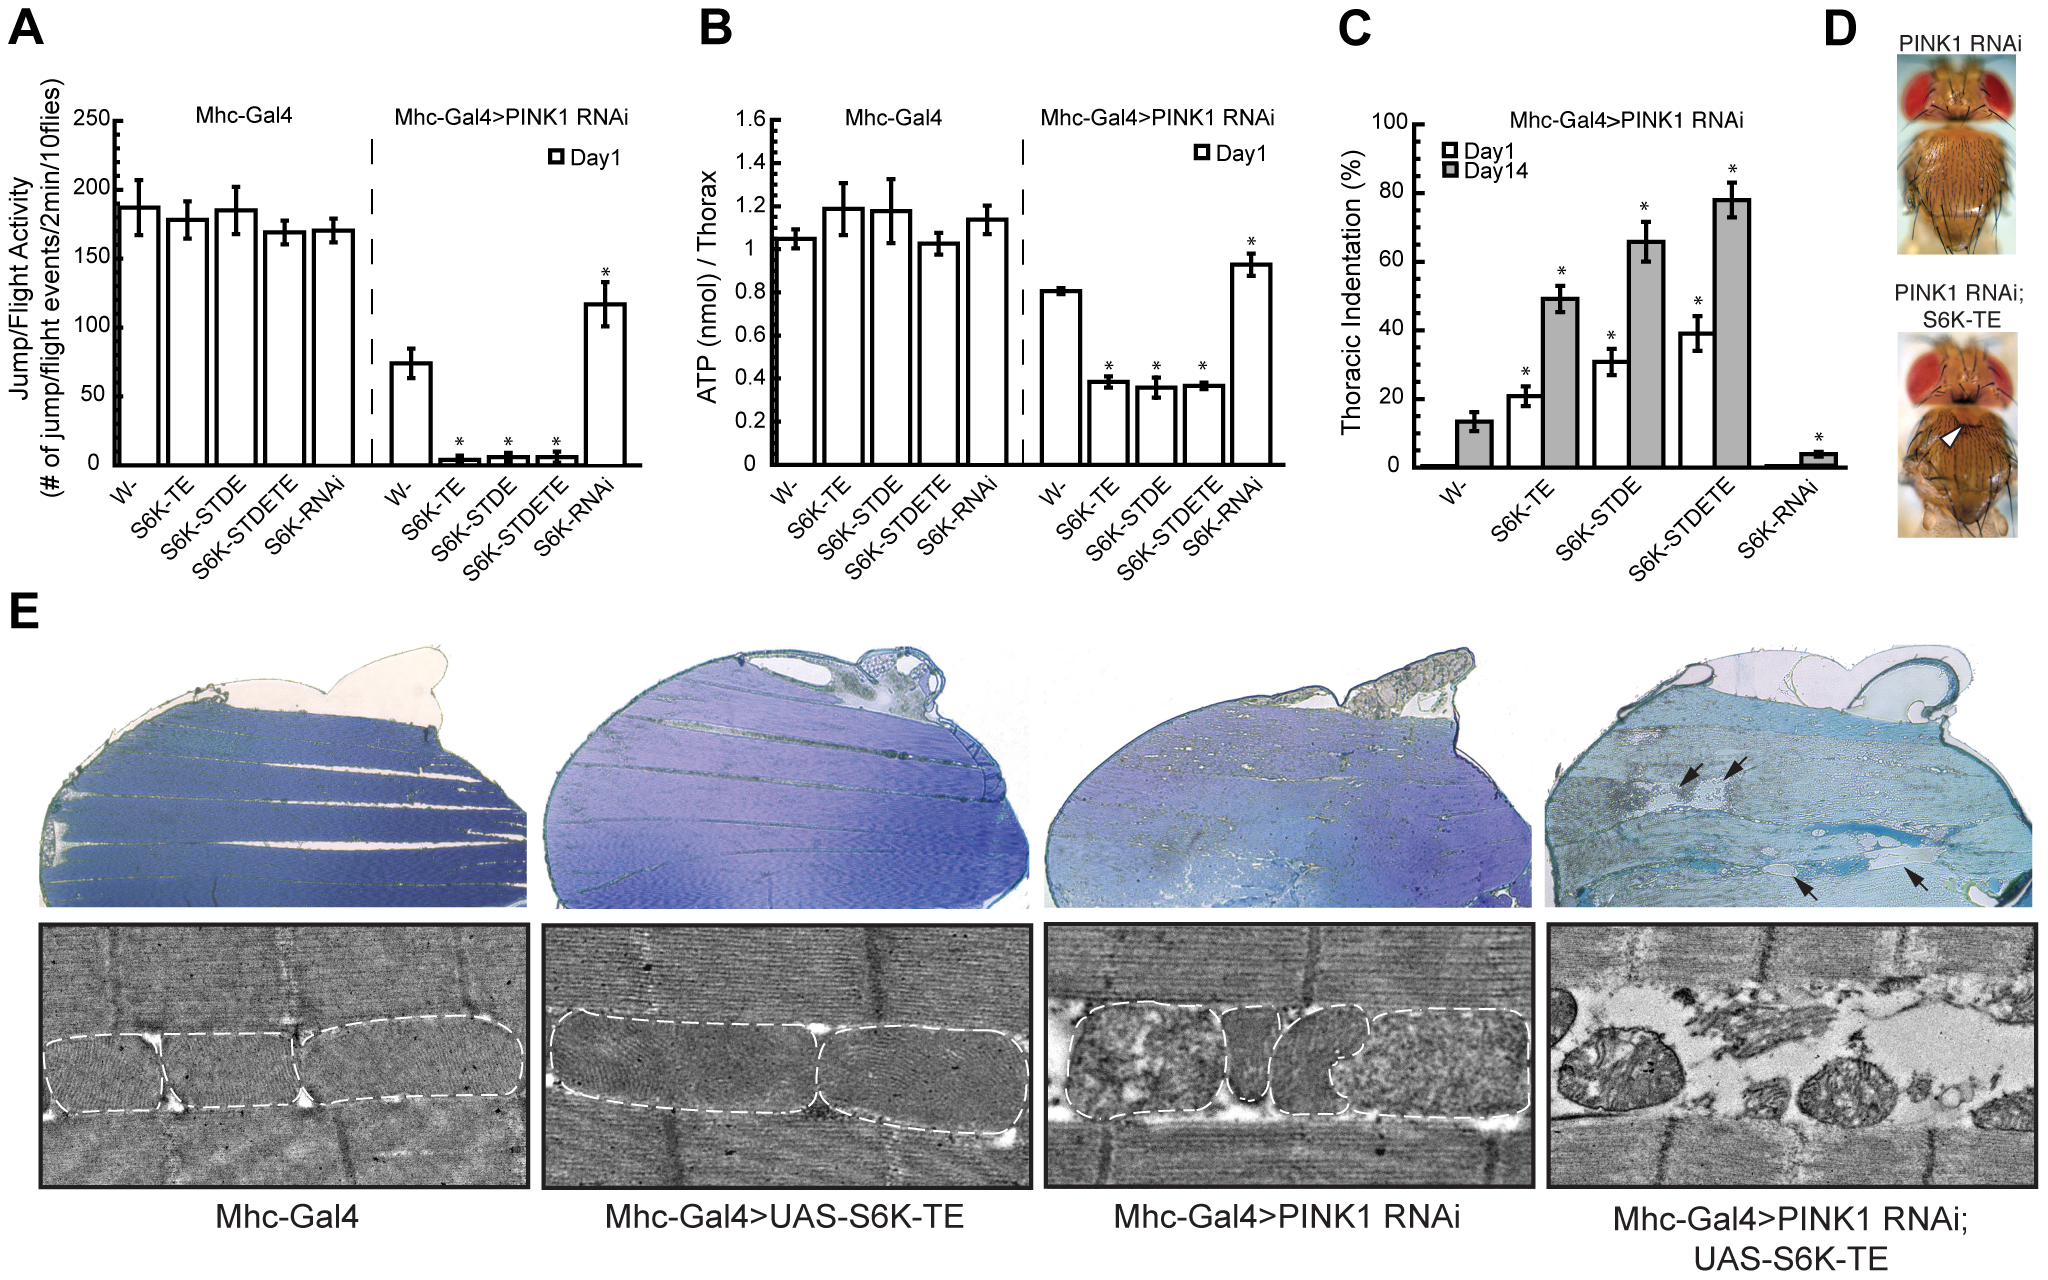 Overexpression or knockdown of S6K strongly modifies <i>PINK1</i> RNAi phenotypes in the muscle.